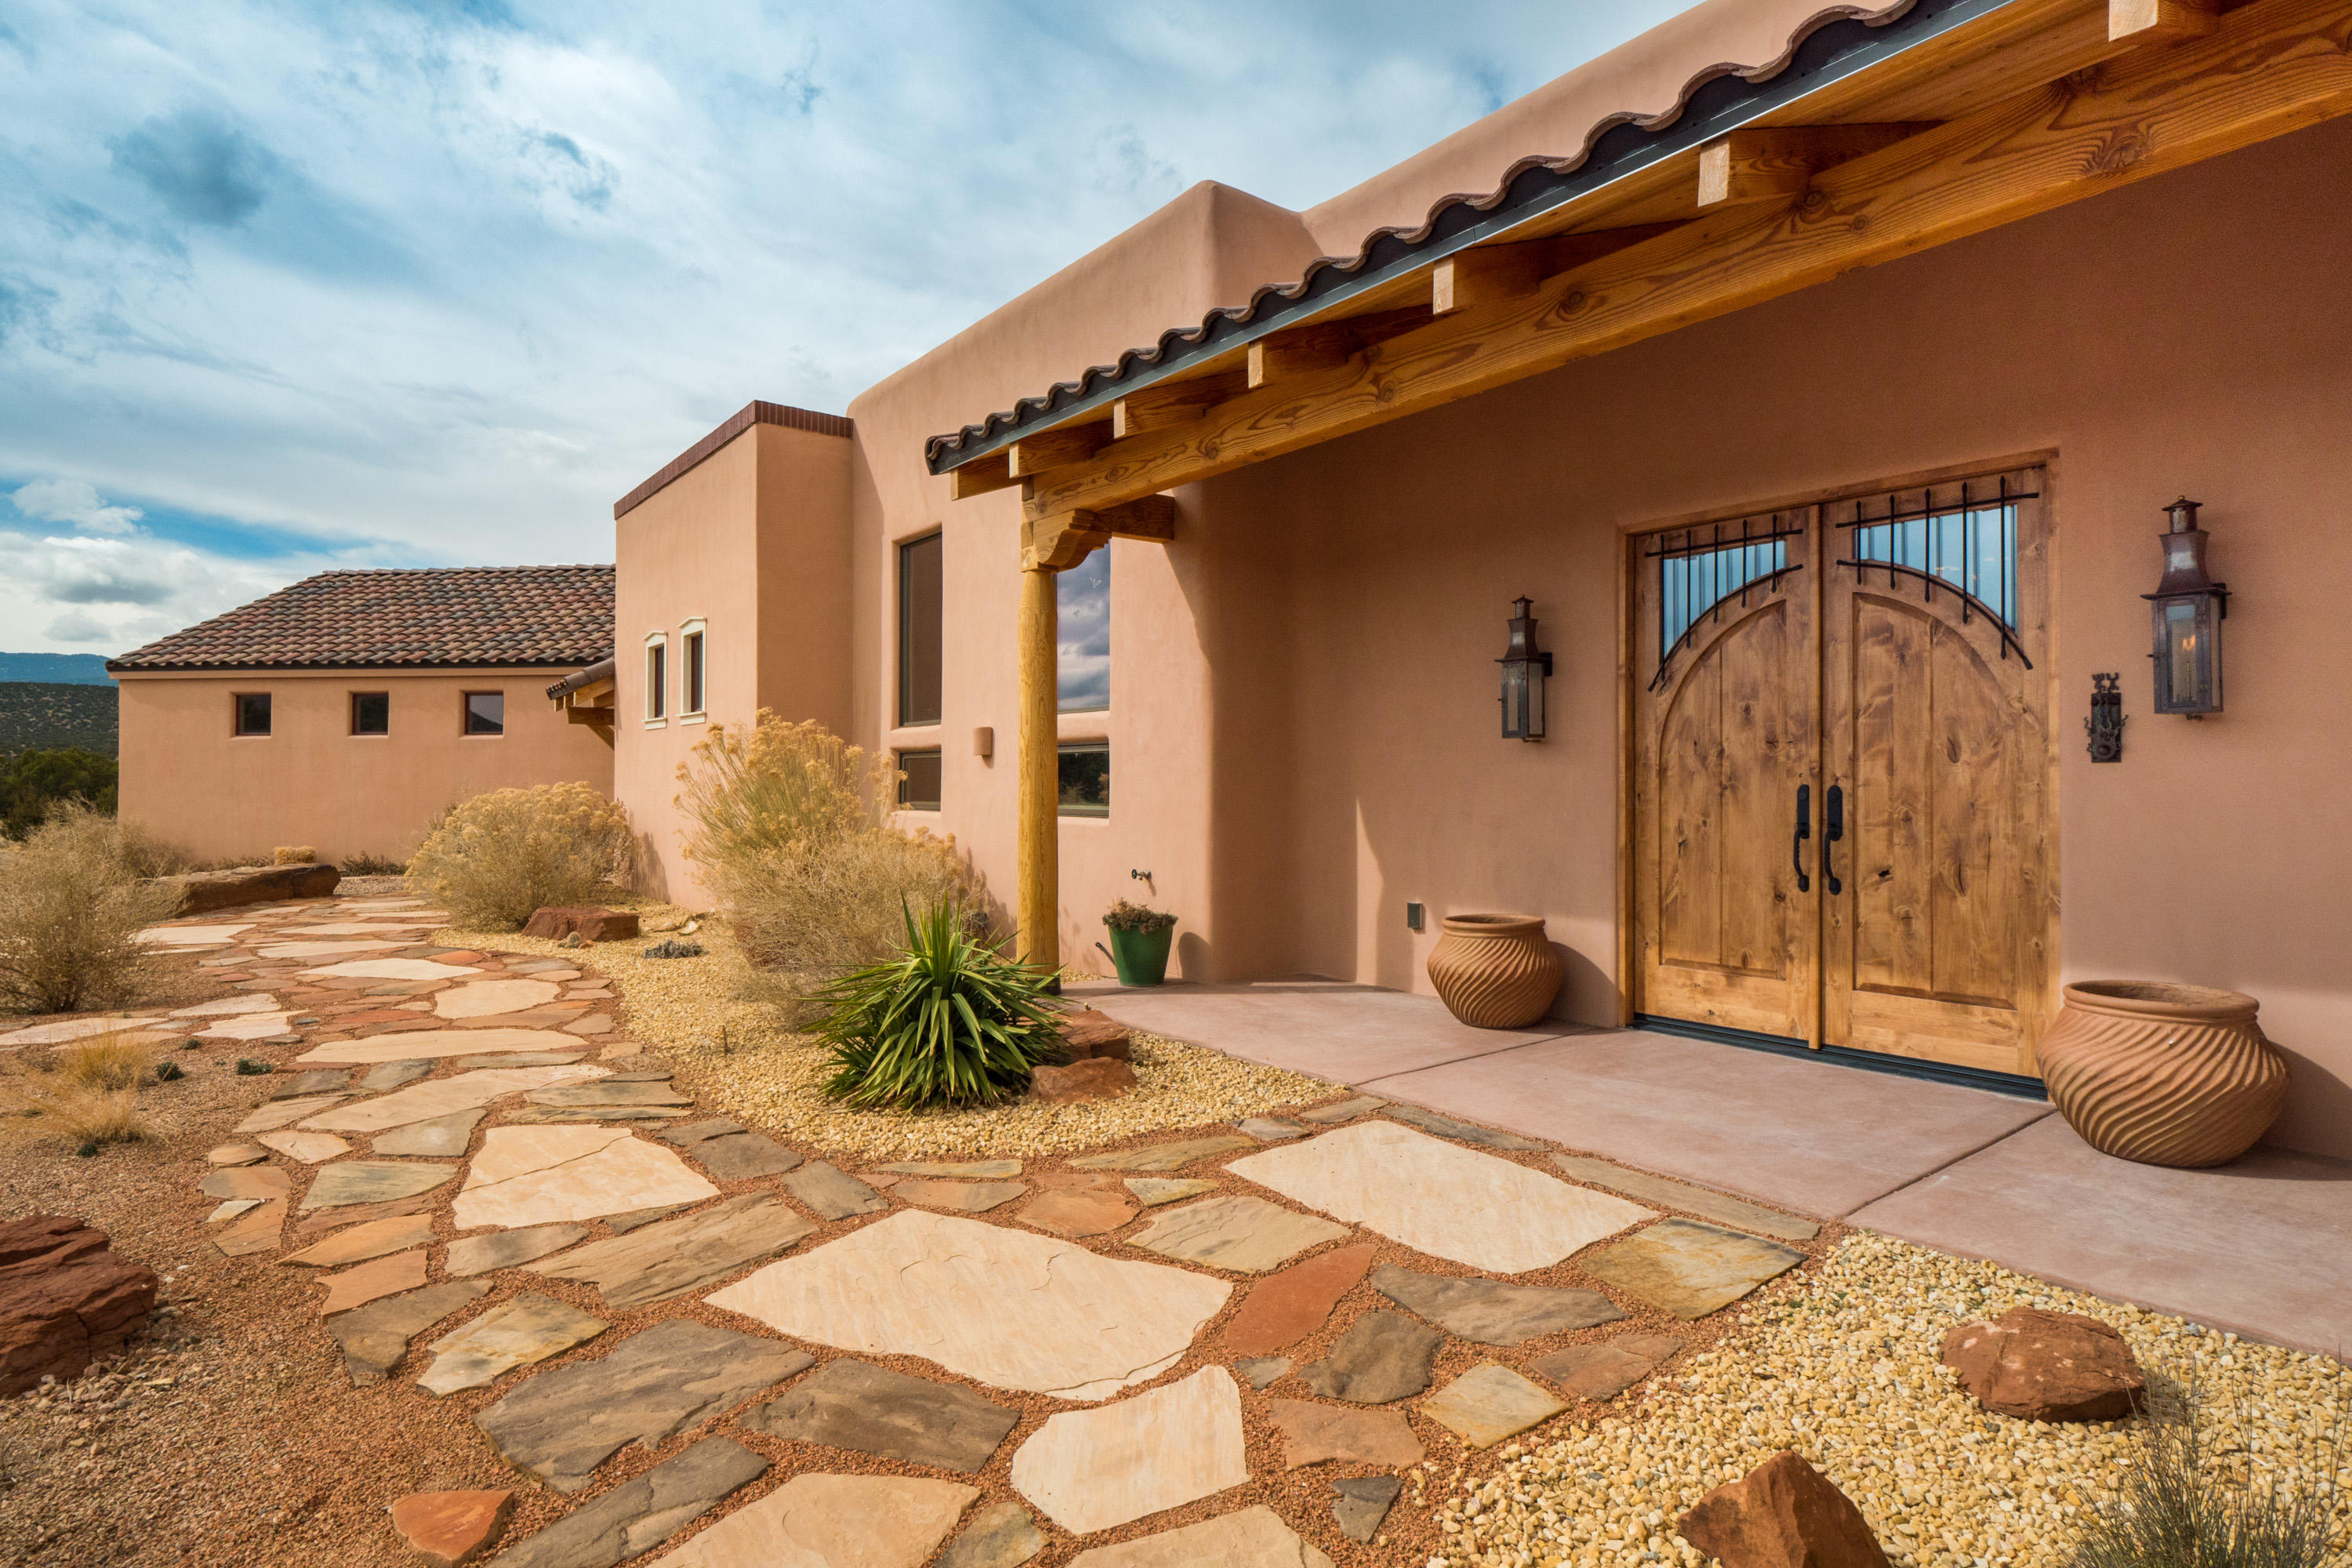 Welcome to this one-of-a-kind, newly constructed (2019) home located in the desirable, gated community of San Pedro Overlook. Featured in SuCasa magazine, this home was designed with a true ''hacienda'' in mind with the exterior accessible through nearly every room. The ensuite is a delight, with a HIS/HERS master with separate bedrooms, bathrooms & closets. The owner spared no expense in creating this luxurious getaway including: 2x6 construction, Semco windows & doors, Italian tile floors, custom doors & vanities from India, 1760's cast iron gates from Scotland, extensive landscaping & MORE. With high efficiency mechanical systems, this home is affordable to maintain. Community amenities include a workout room, pool, walking paths, trails. Situated on 4+ acres with breathtaking views.